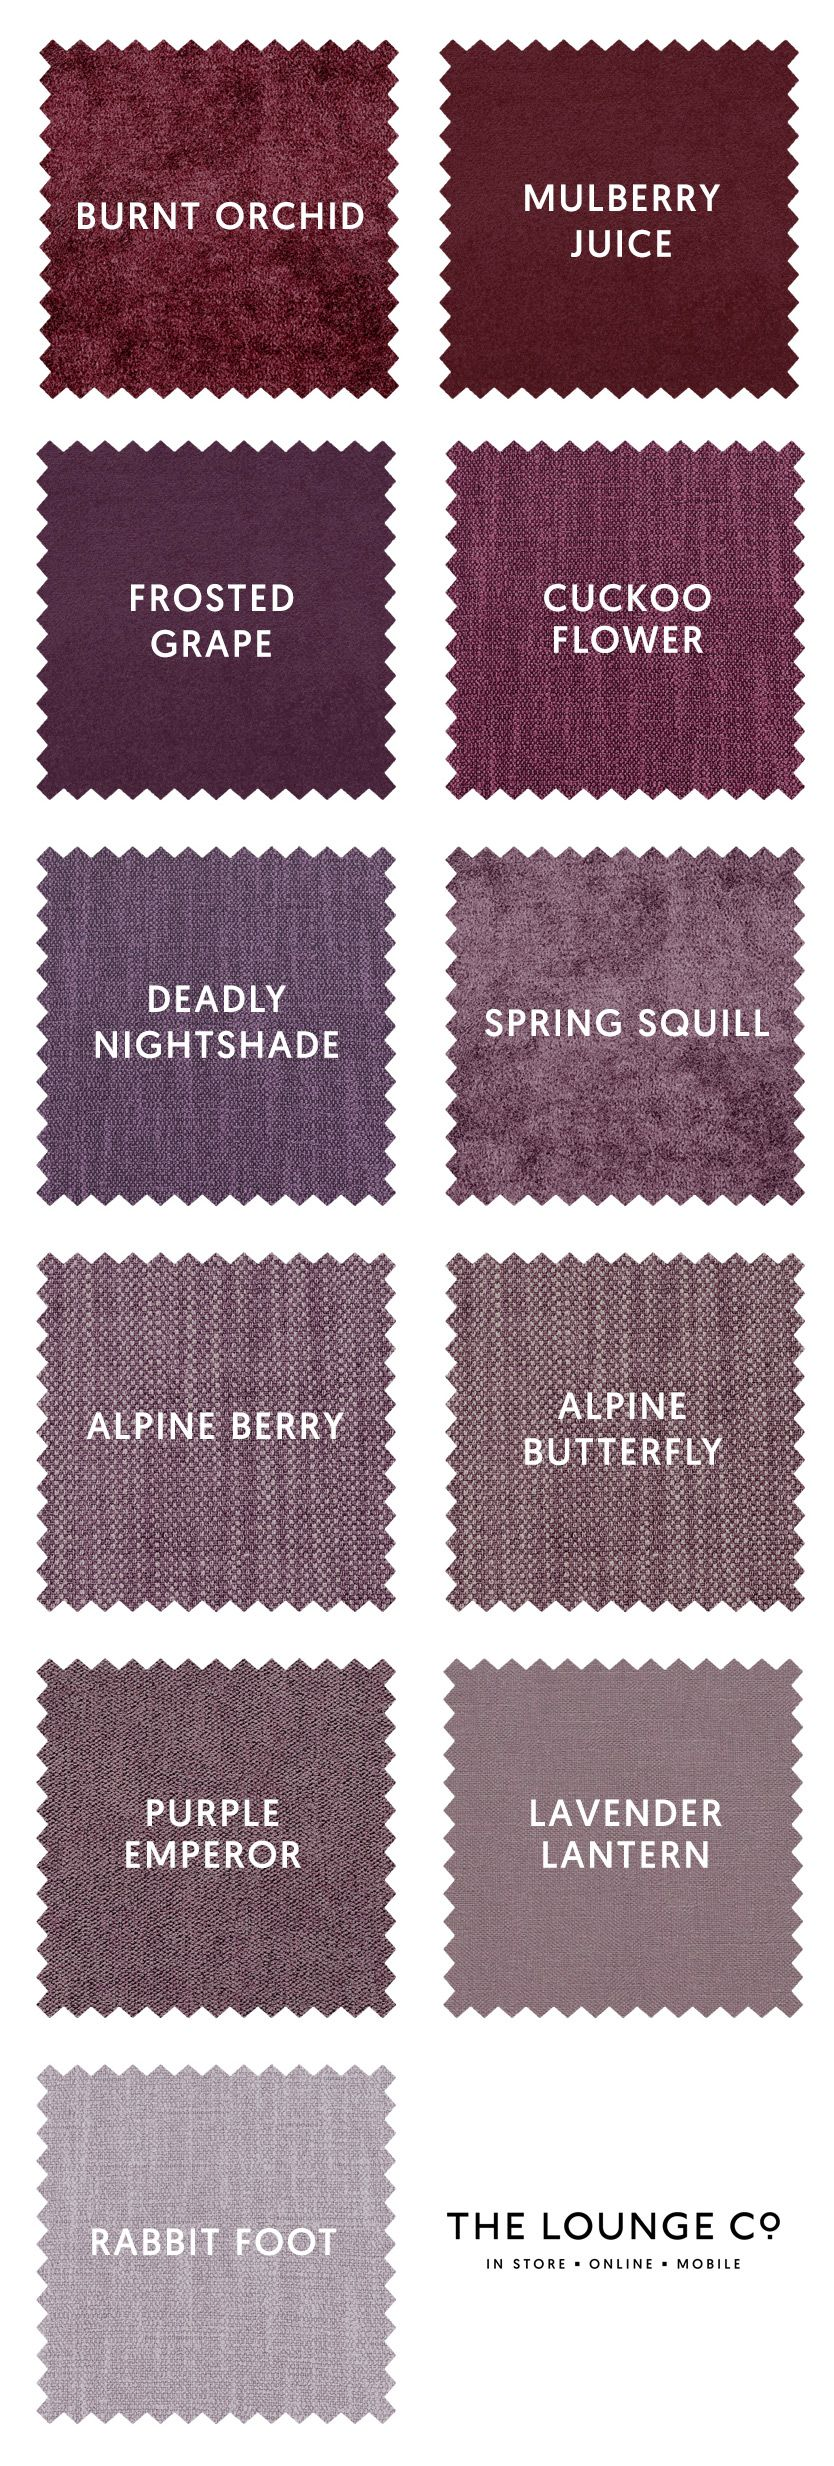 Ones to Swatch | At The Lounge Co. you'll find a stunning selection of purple and red fabrics in tweed, velvet, chenille, linen and cotton. Order up to 8 free swatches now. Burnt Orchid, Mulberry Juice, Frosted Grape, Cuckoo Flower, Deadly Nightshade, Spring Squill, Alpine Berry, Alpine Butterfly, Purple Emperor, Lavender Lantern, Rabbit Foot. #theloungeco #swatch #swatches #fabric #berry #red #purple #sofa #chair #upholstery